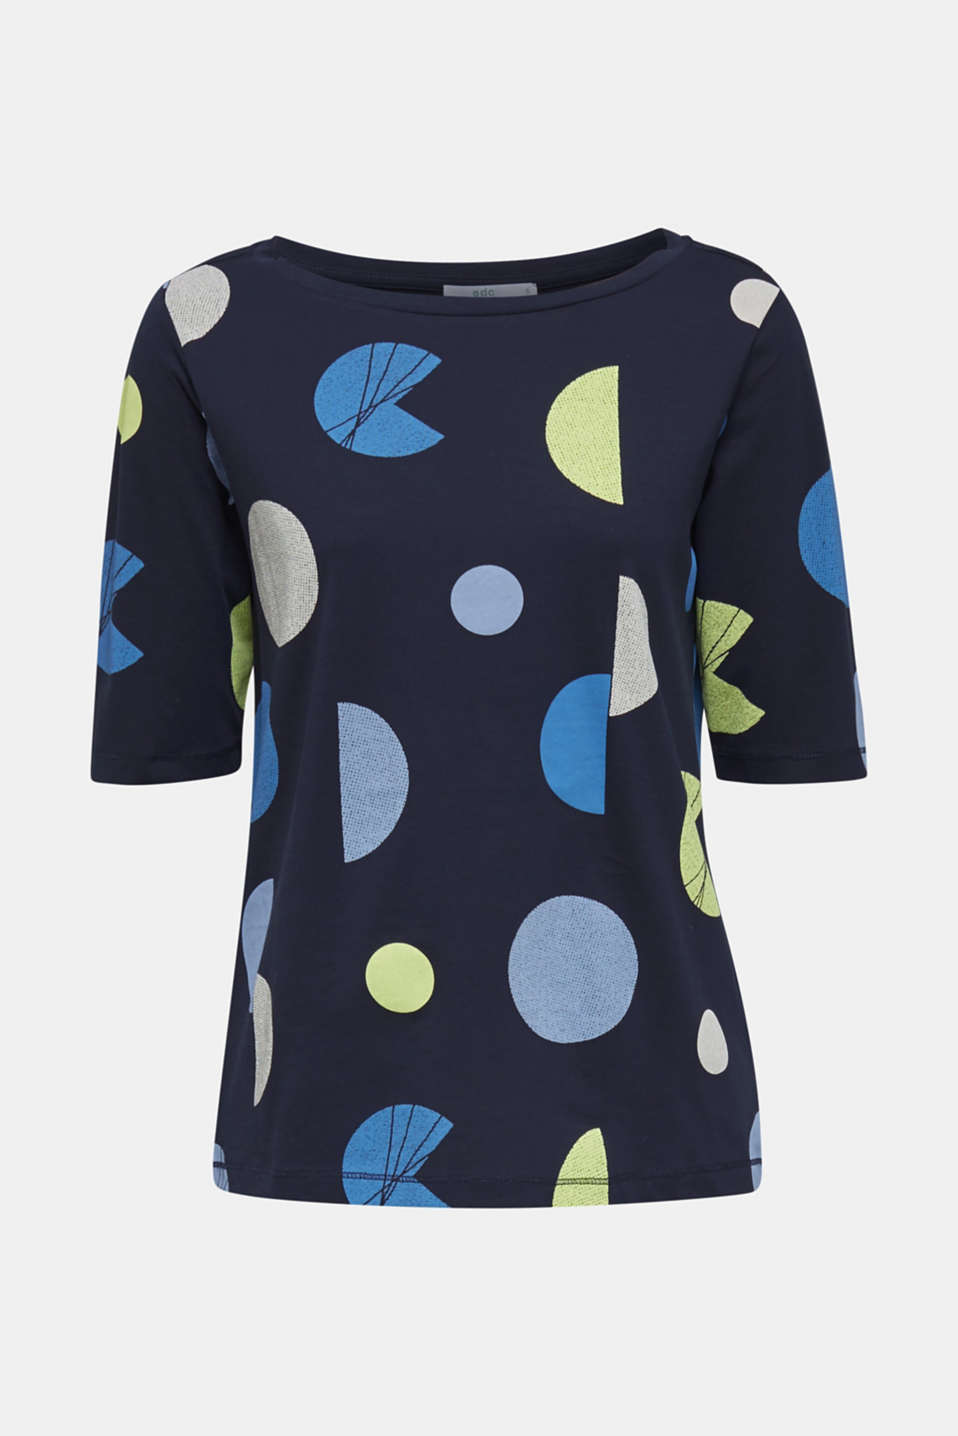 T-shirt with a graphic print, 100% cotton, NAVY, detail image number 7